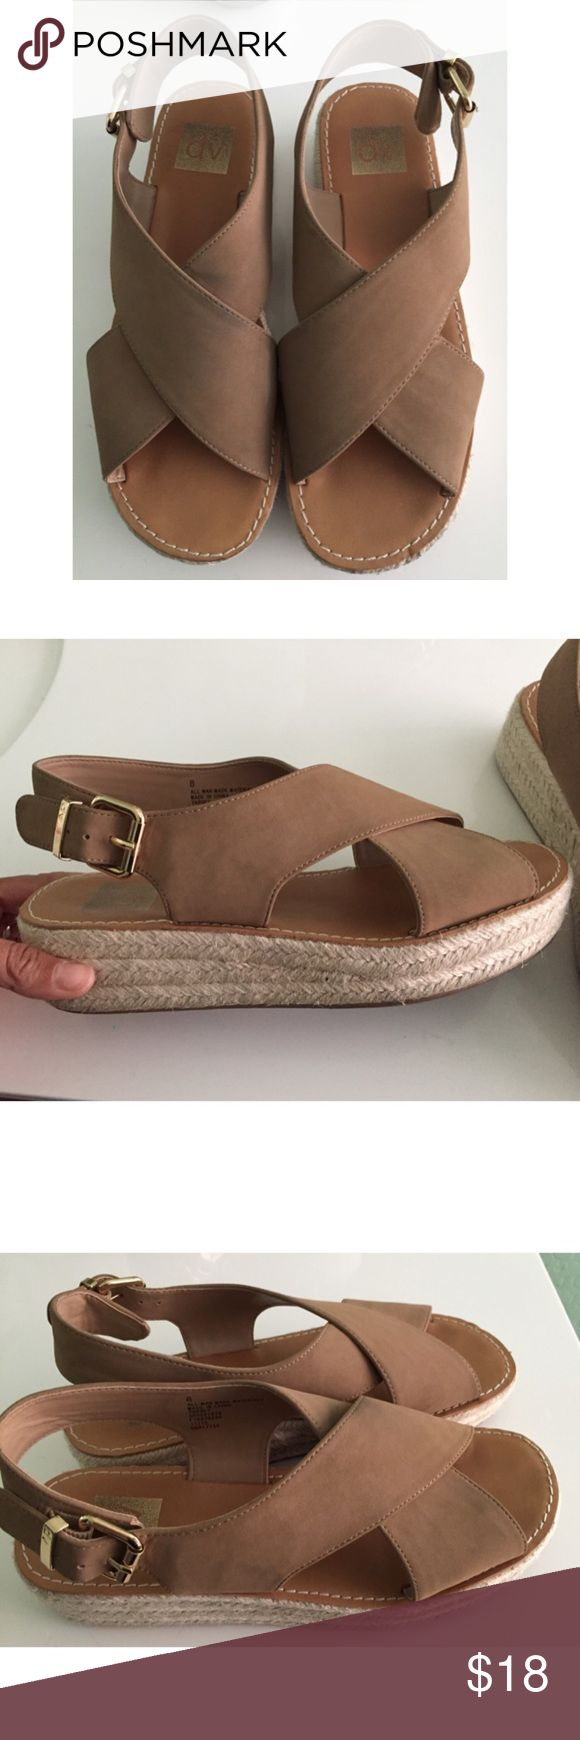 DOLCE VITA Donna Espadrilles 8 beige tan Target Super cute, lightly worn! Perfect for spring/summer from the target collab DV by Dolce Vita Shoes